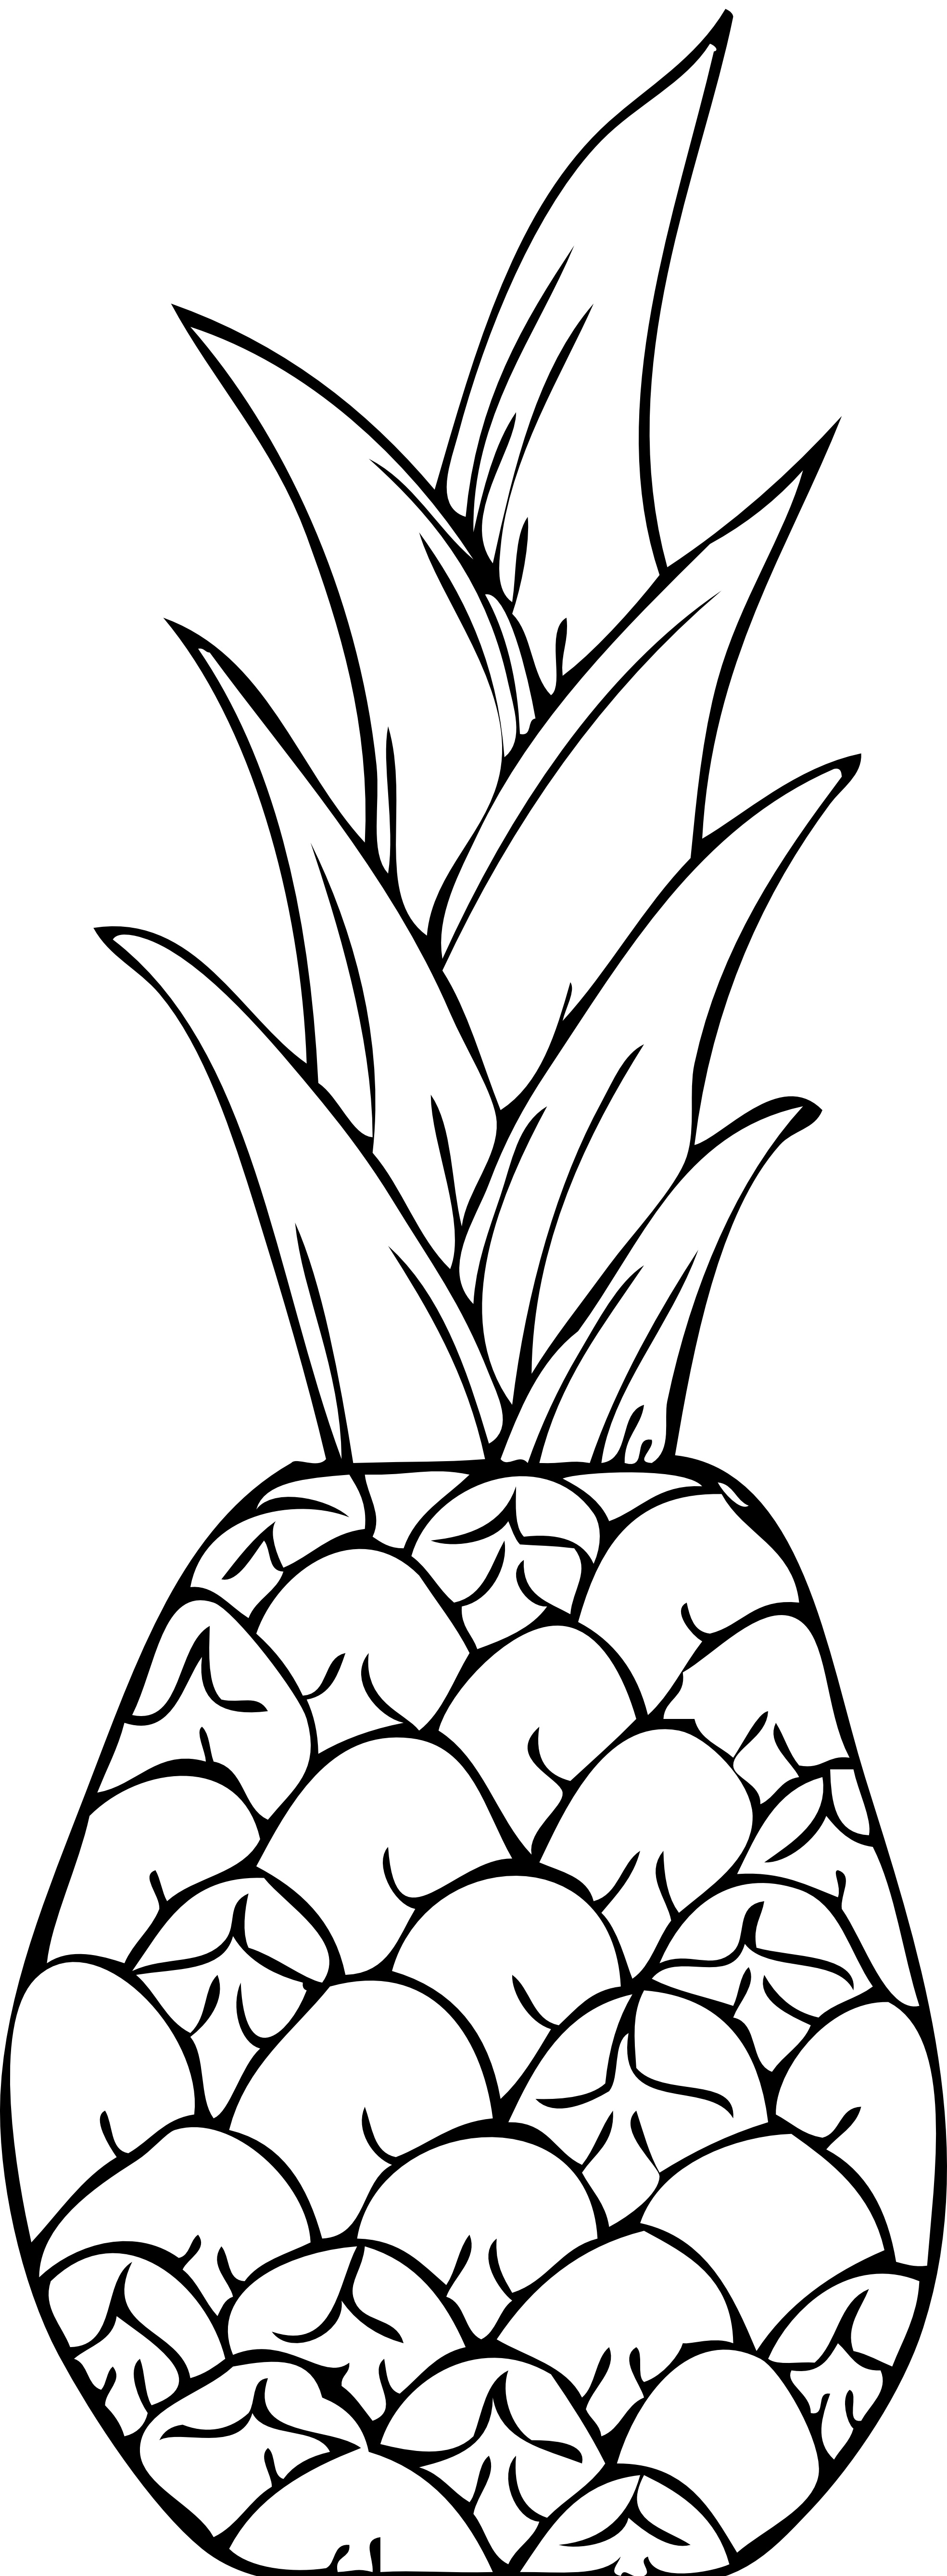 coloring template coloring for kids hello rabbit coloring page for kids for kids template coloring coloring